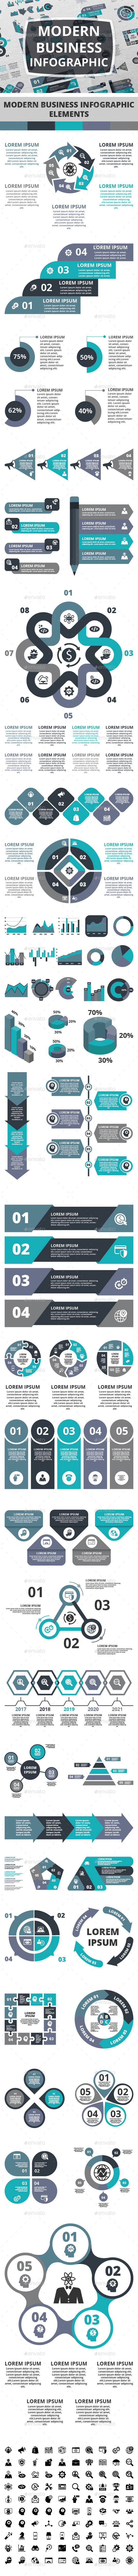 GraphicRiver Modern Business Infographic 21131099